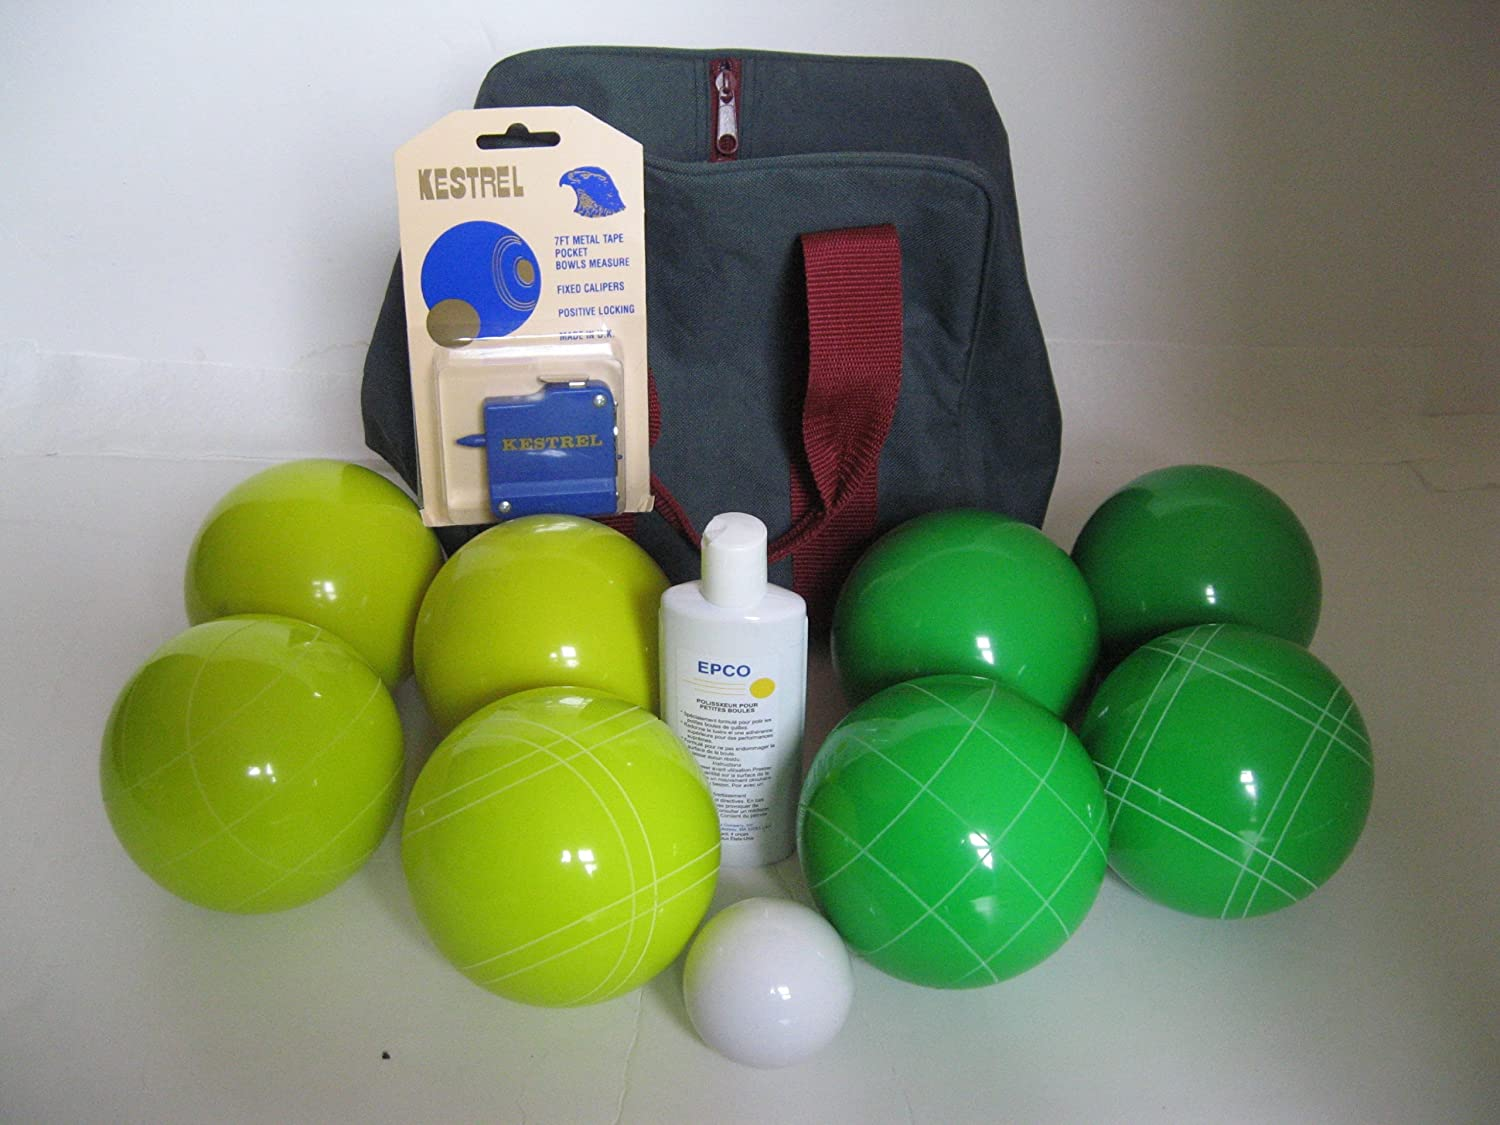 Premium Quality Basic EPCO Bocce package - 107mm Yellow and Green balls, qual...